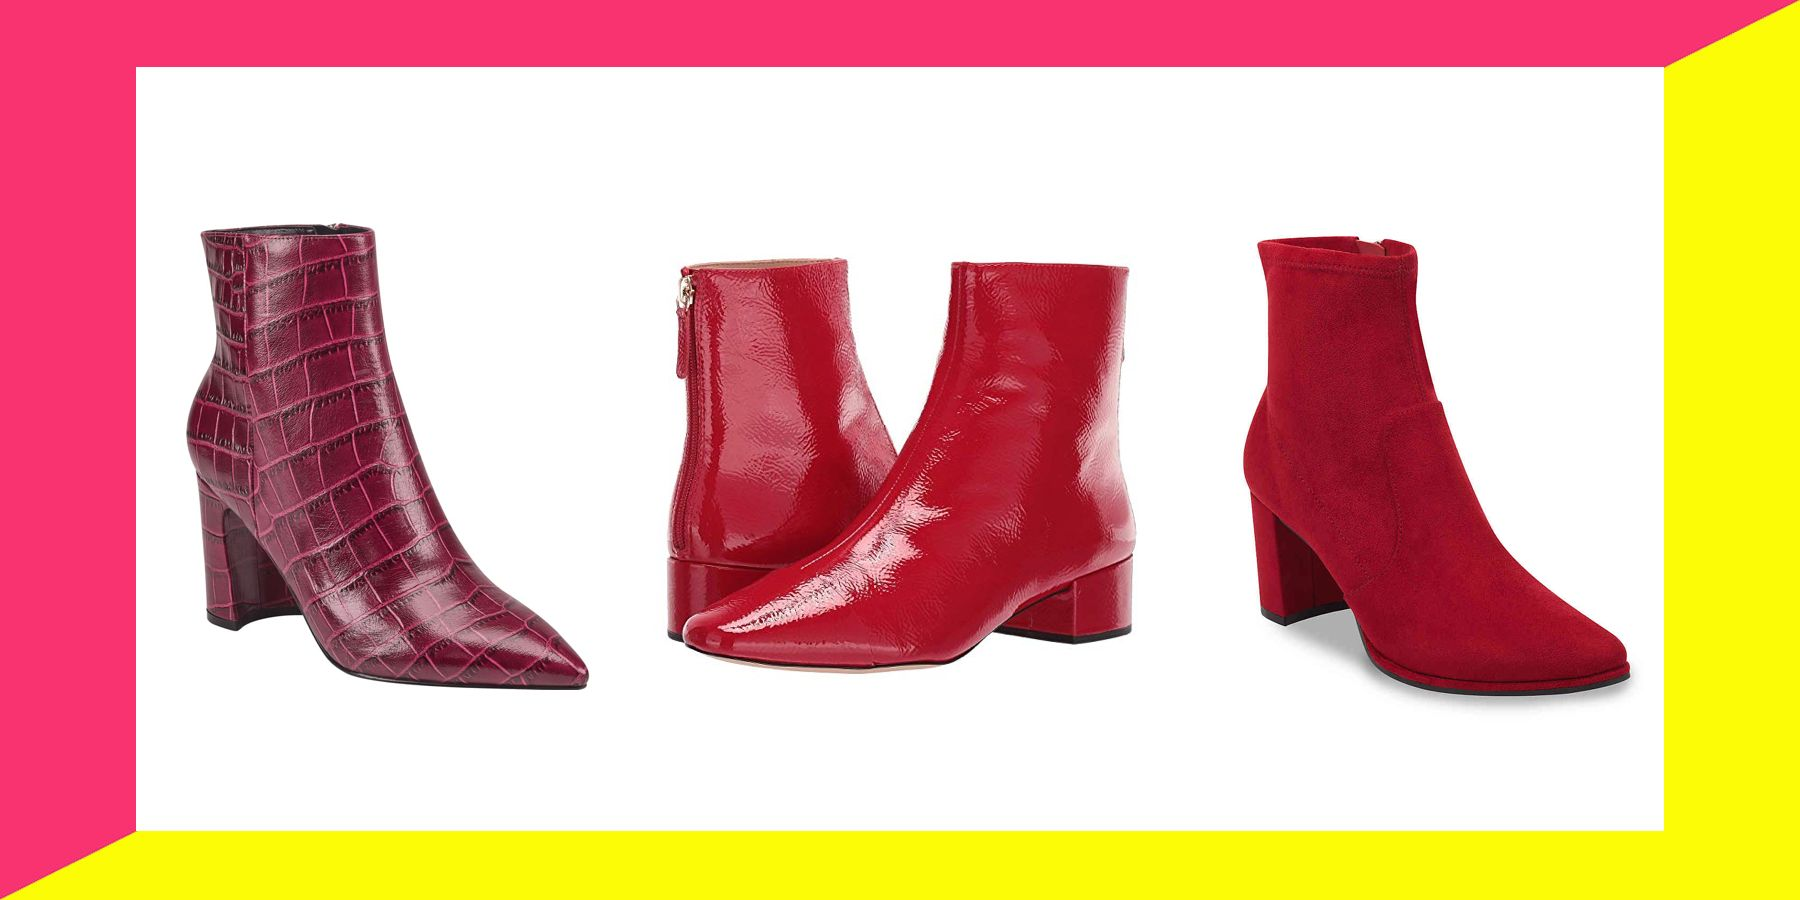 21 Pairs Of Red Ankle Boots To Rock